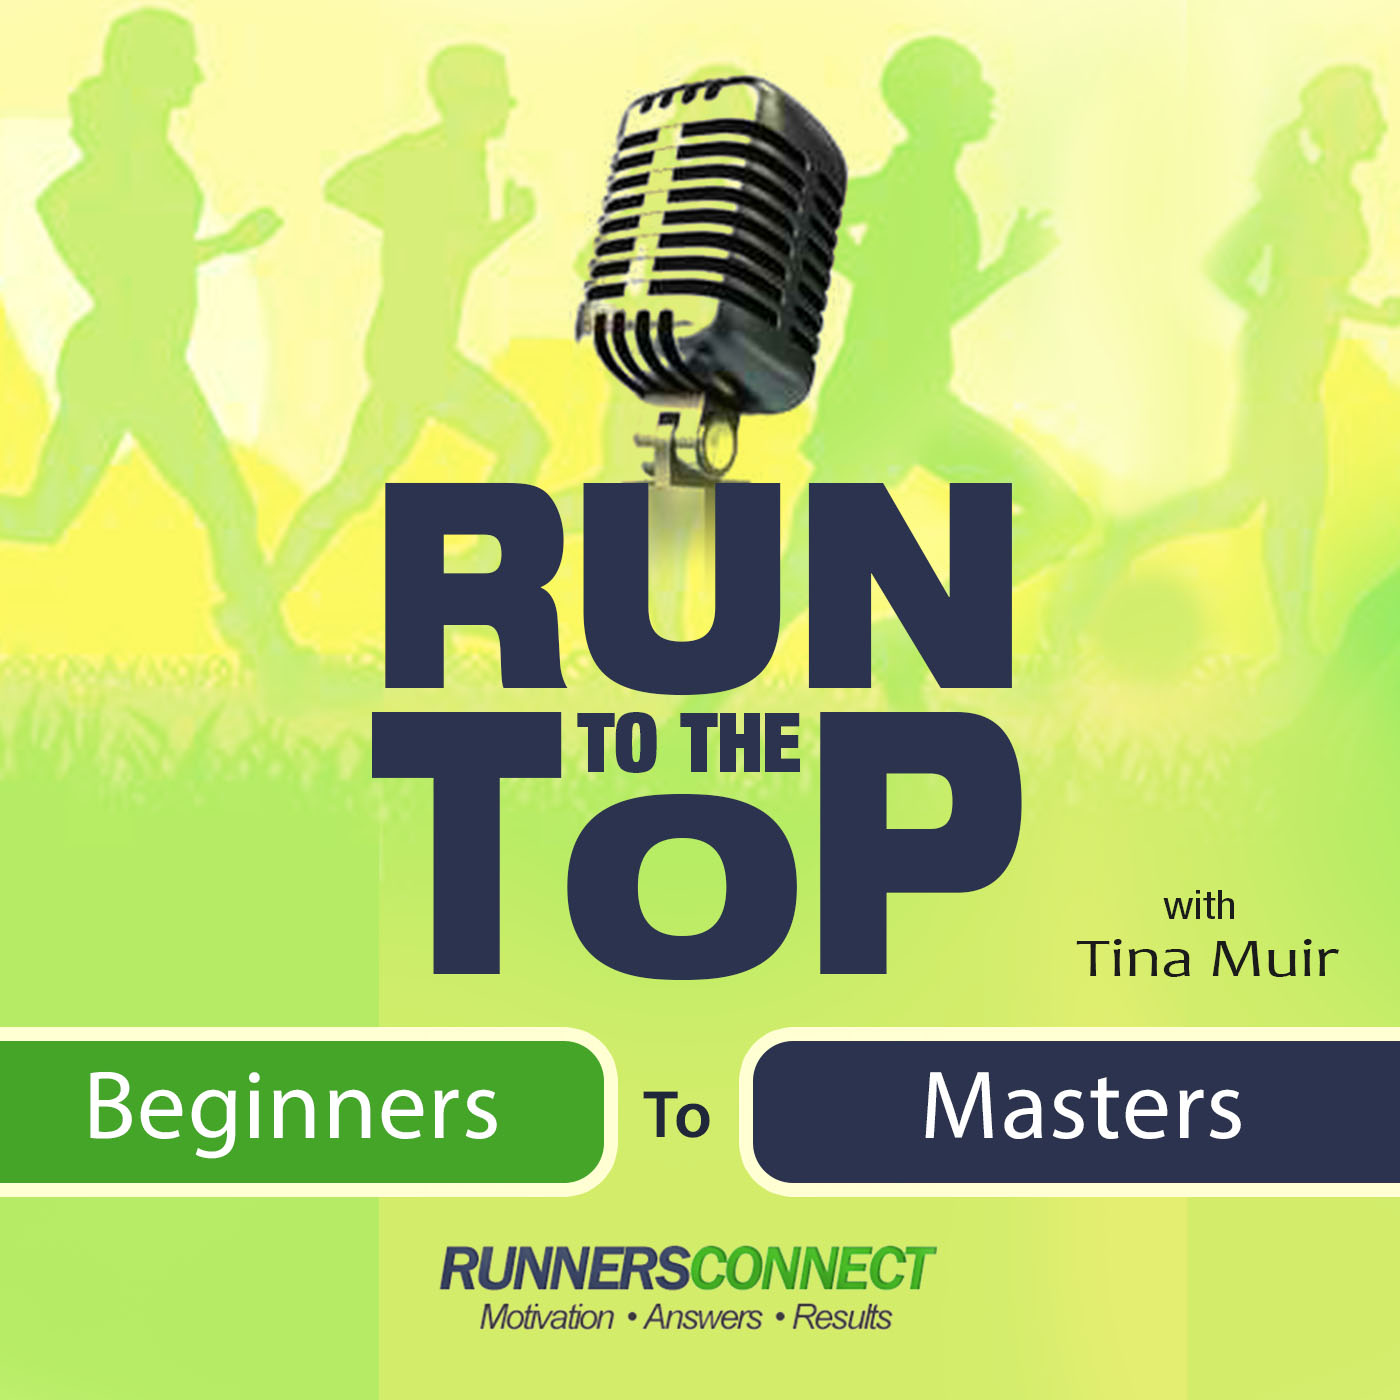 chats with Running Influencers, Researchers, Olympians, Experts & Everyday Runners